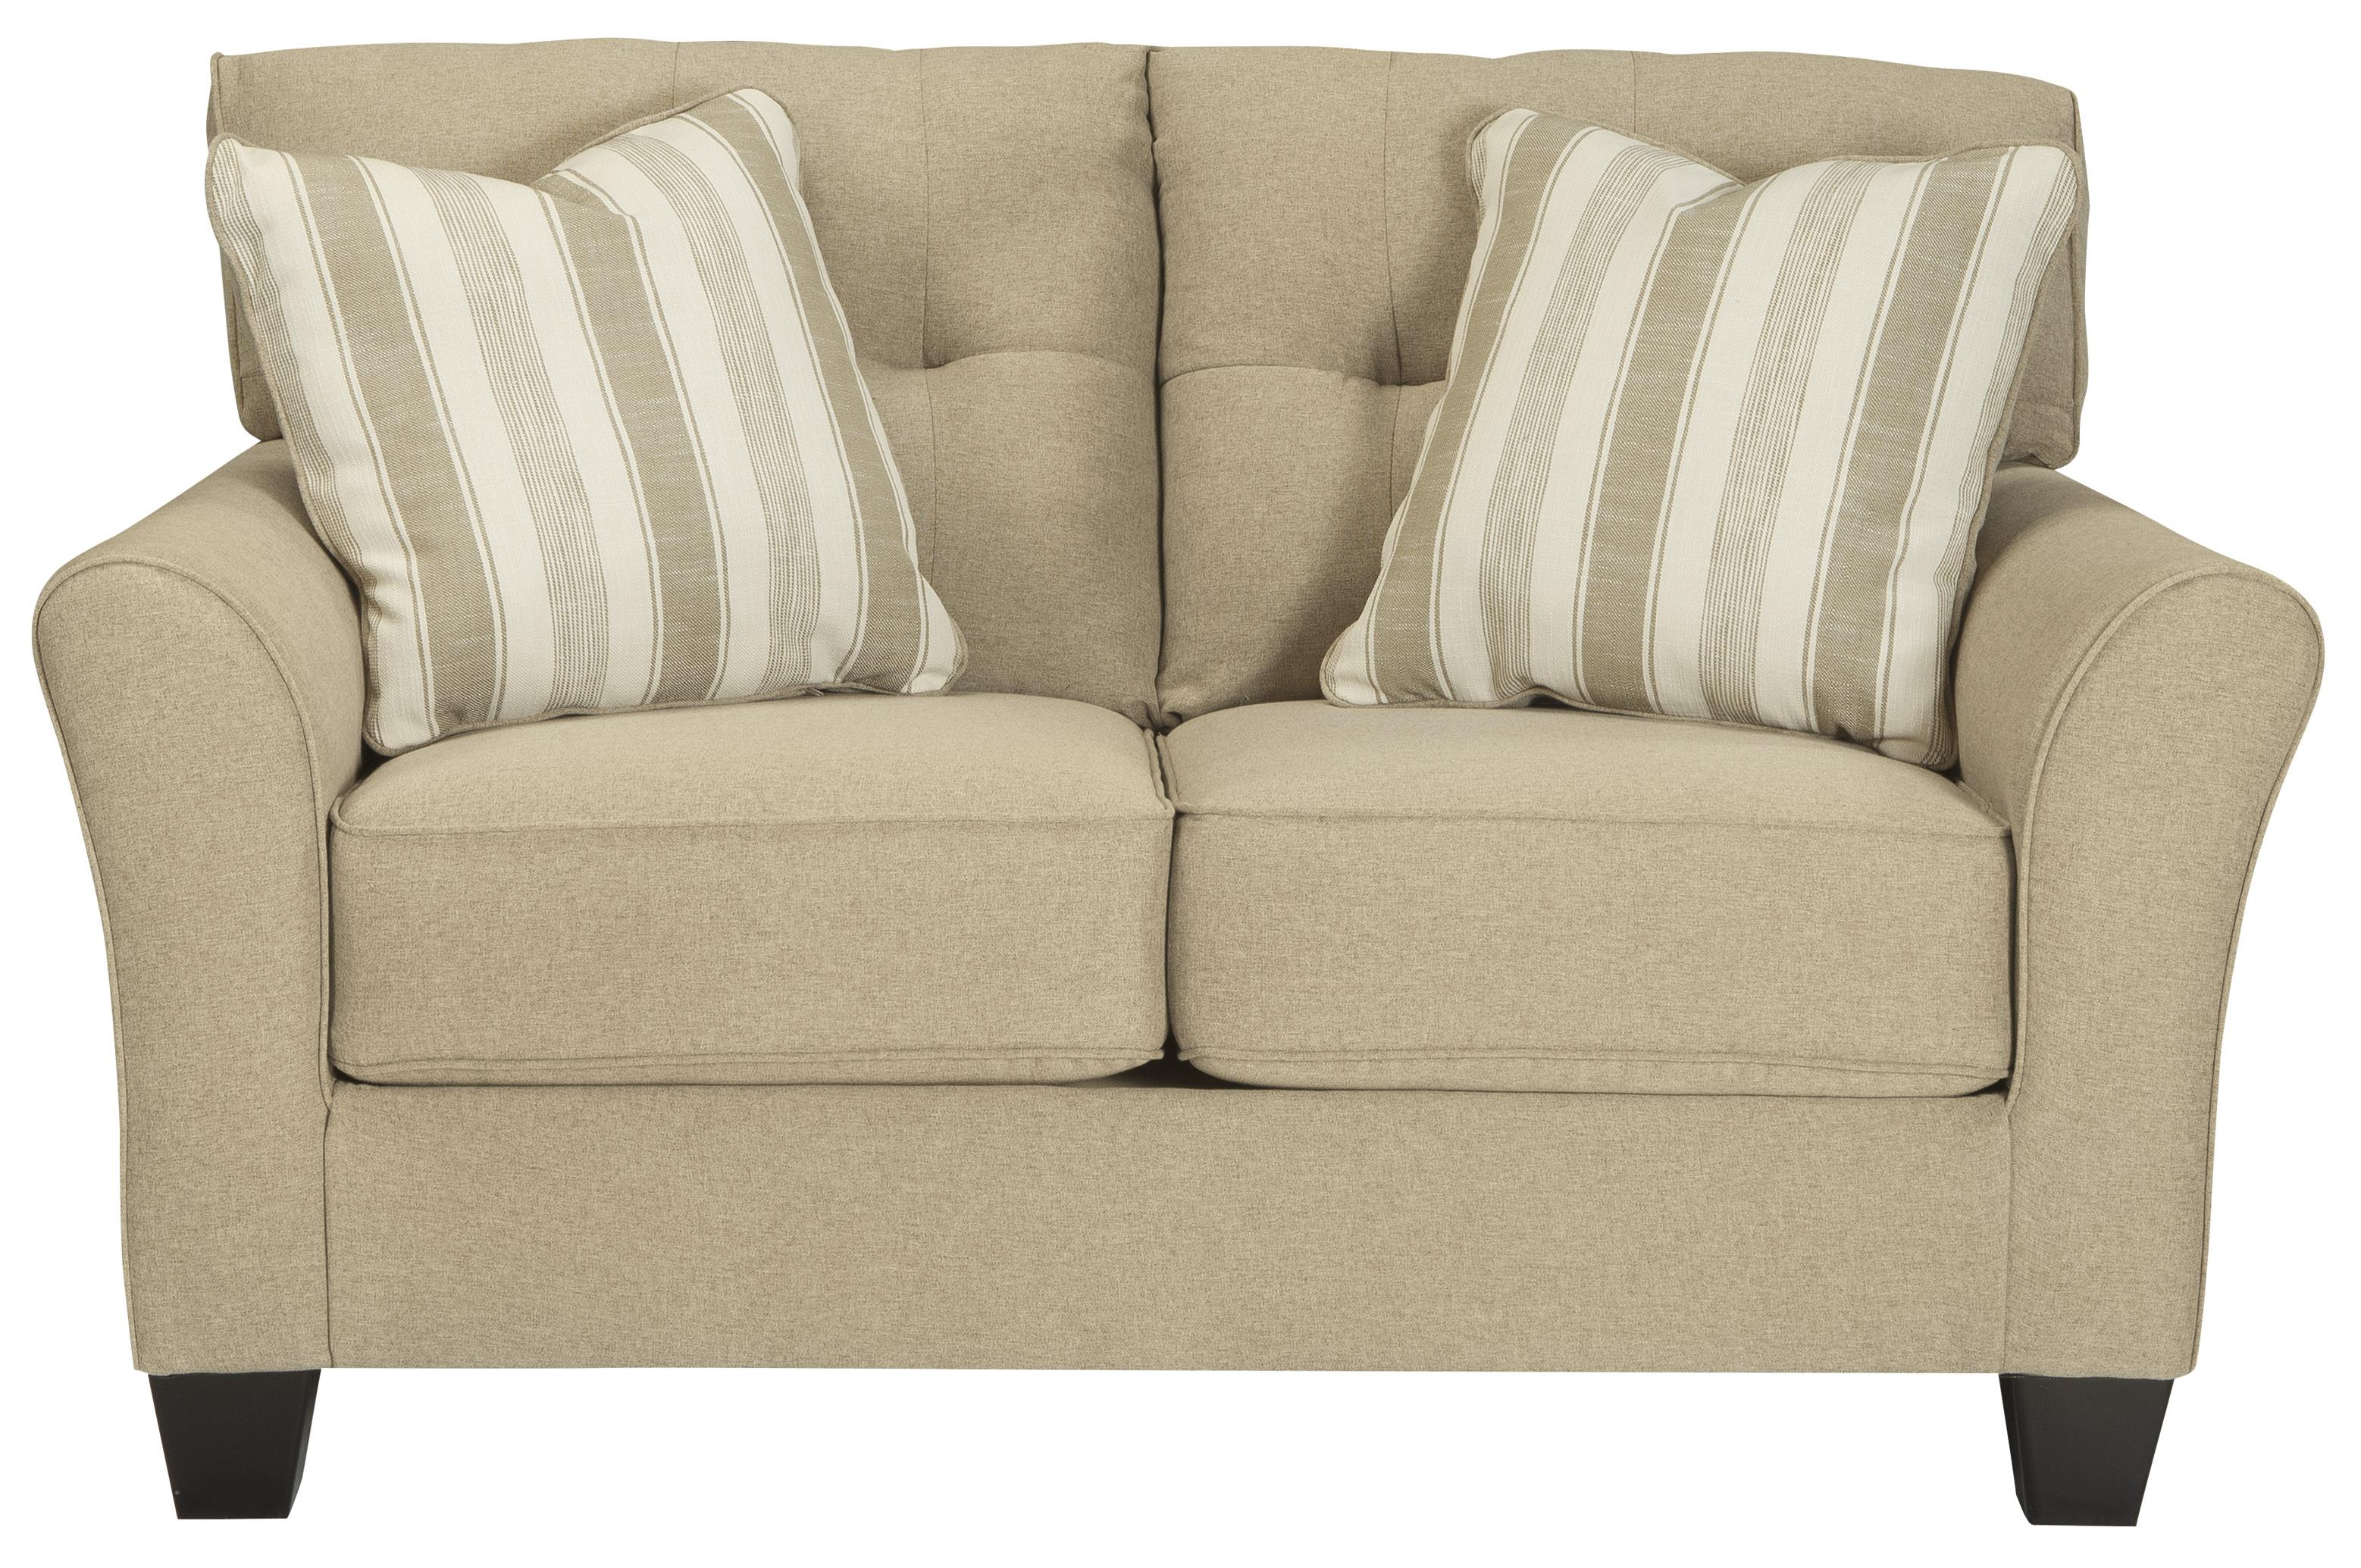 Benchcraft Laryn Loveseat - Item Number: 5190235